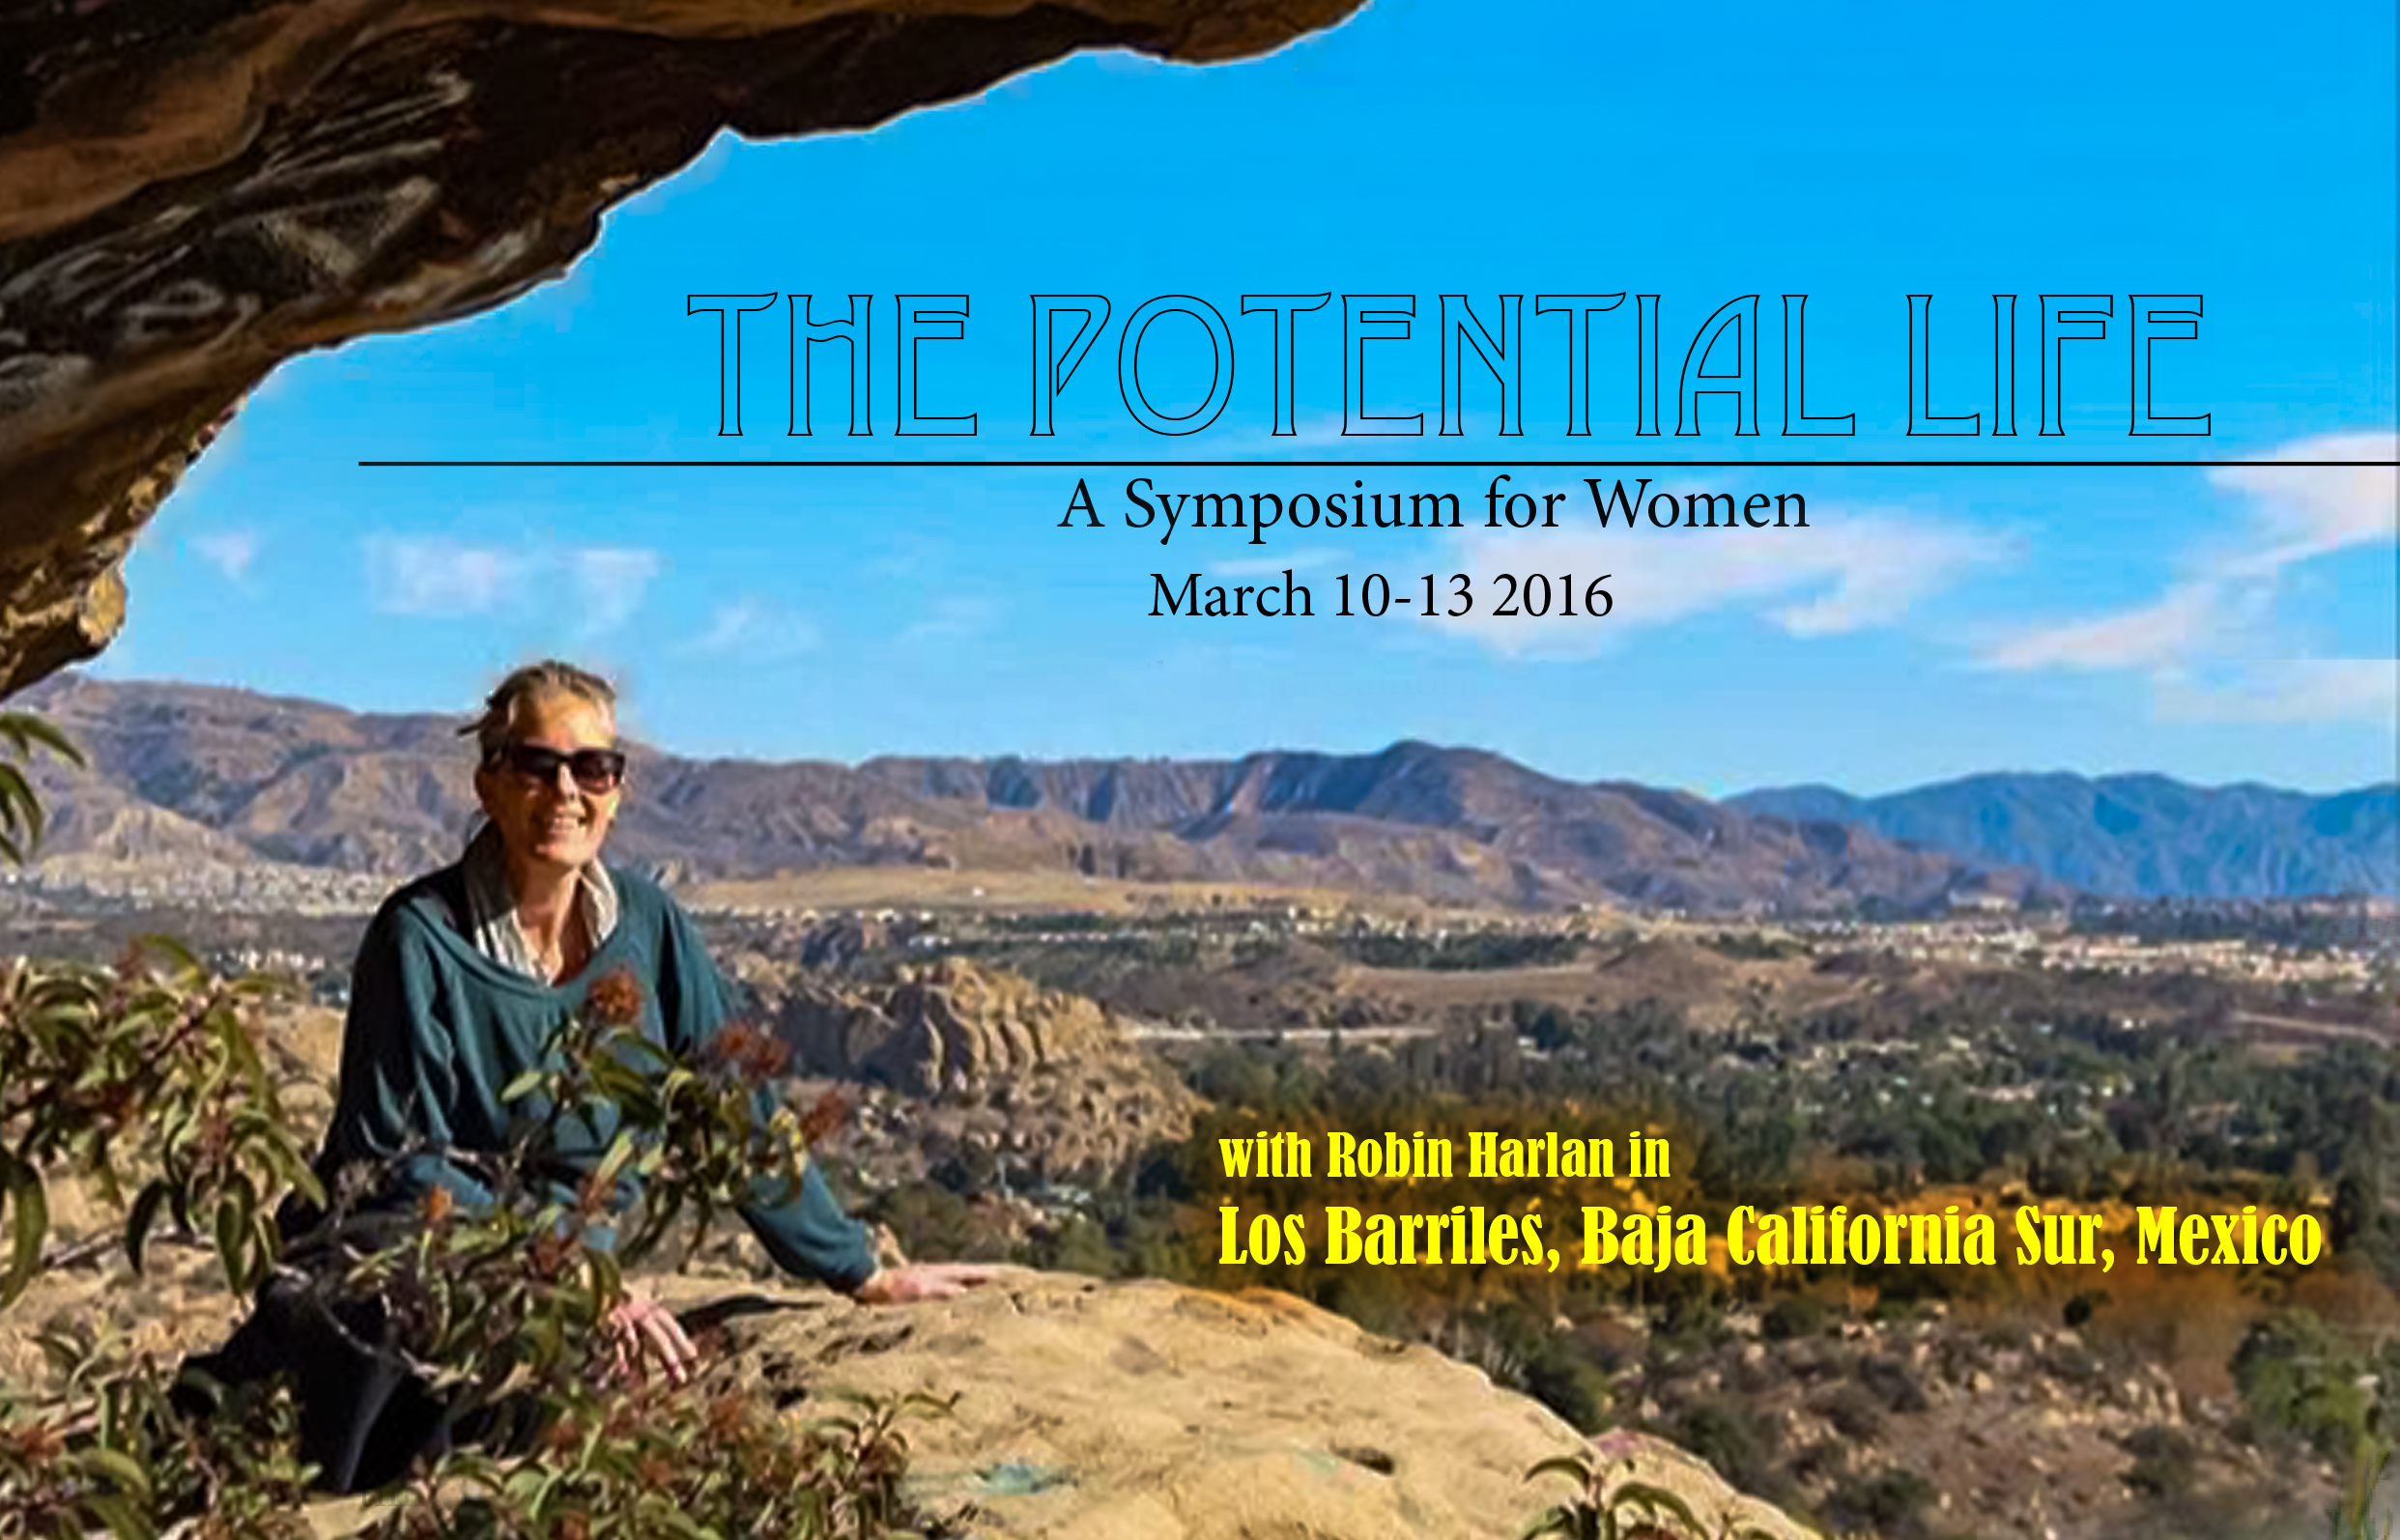 THE POTENTIAL LIFE- a symposium for women MarcH 10-13, 2016